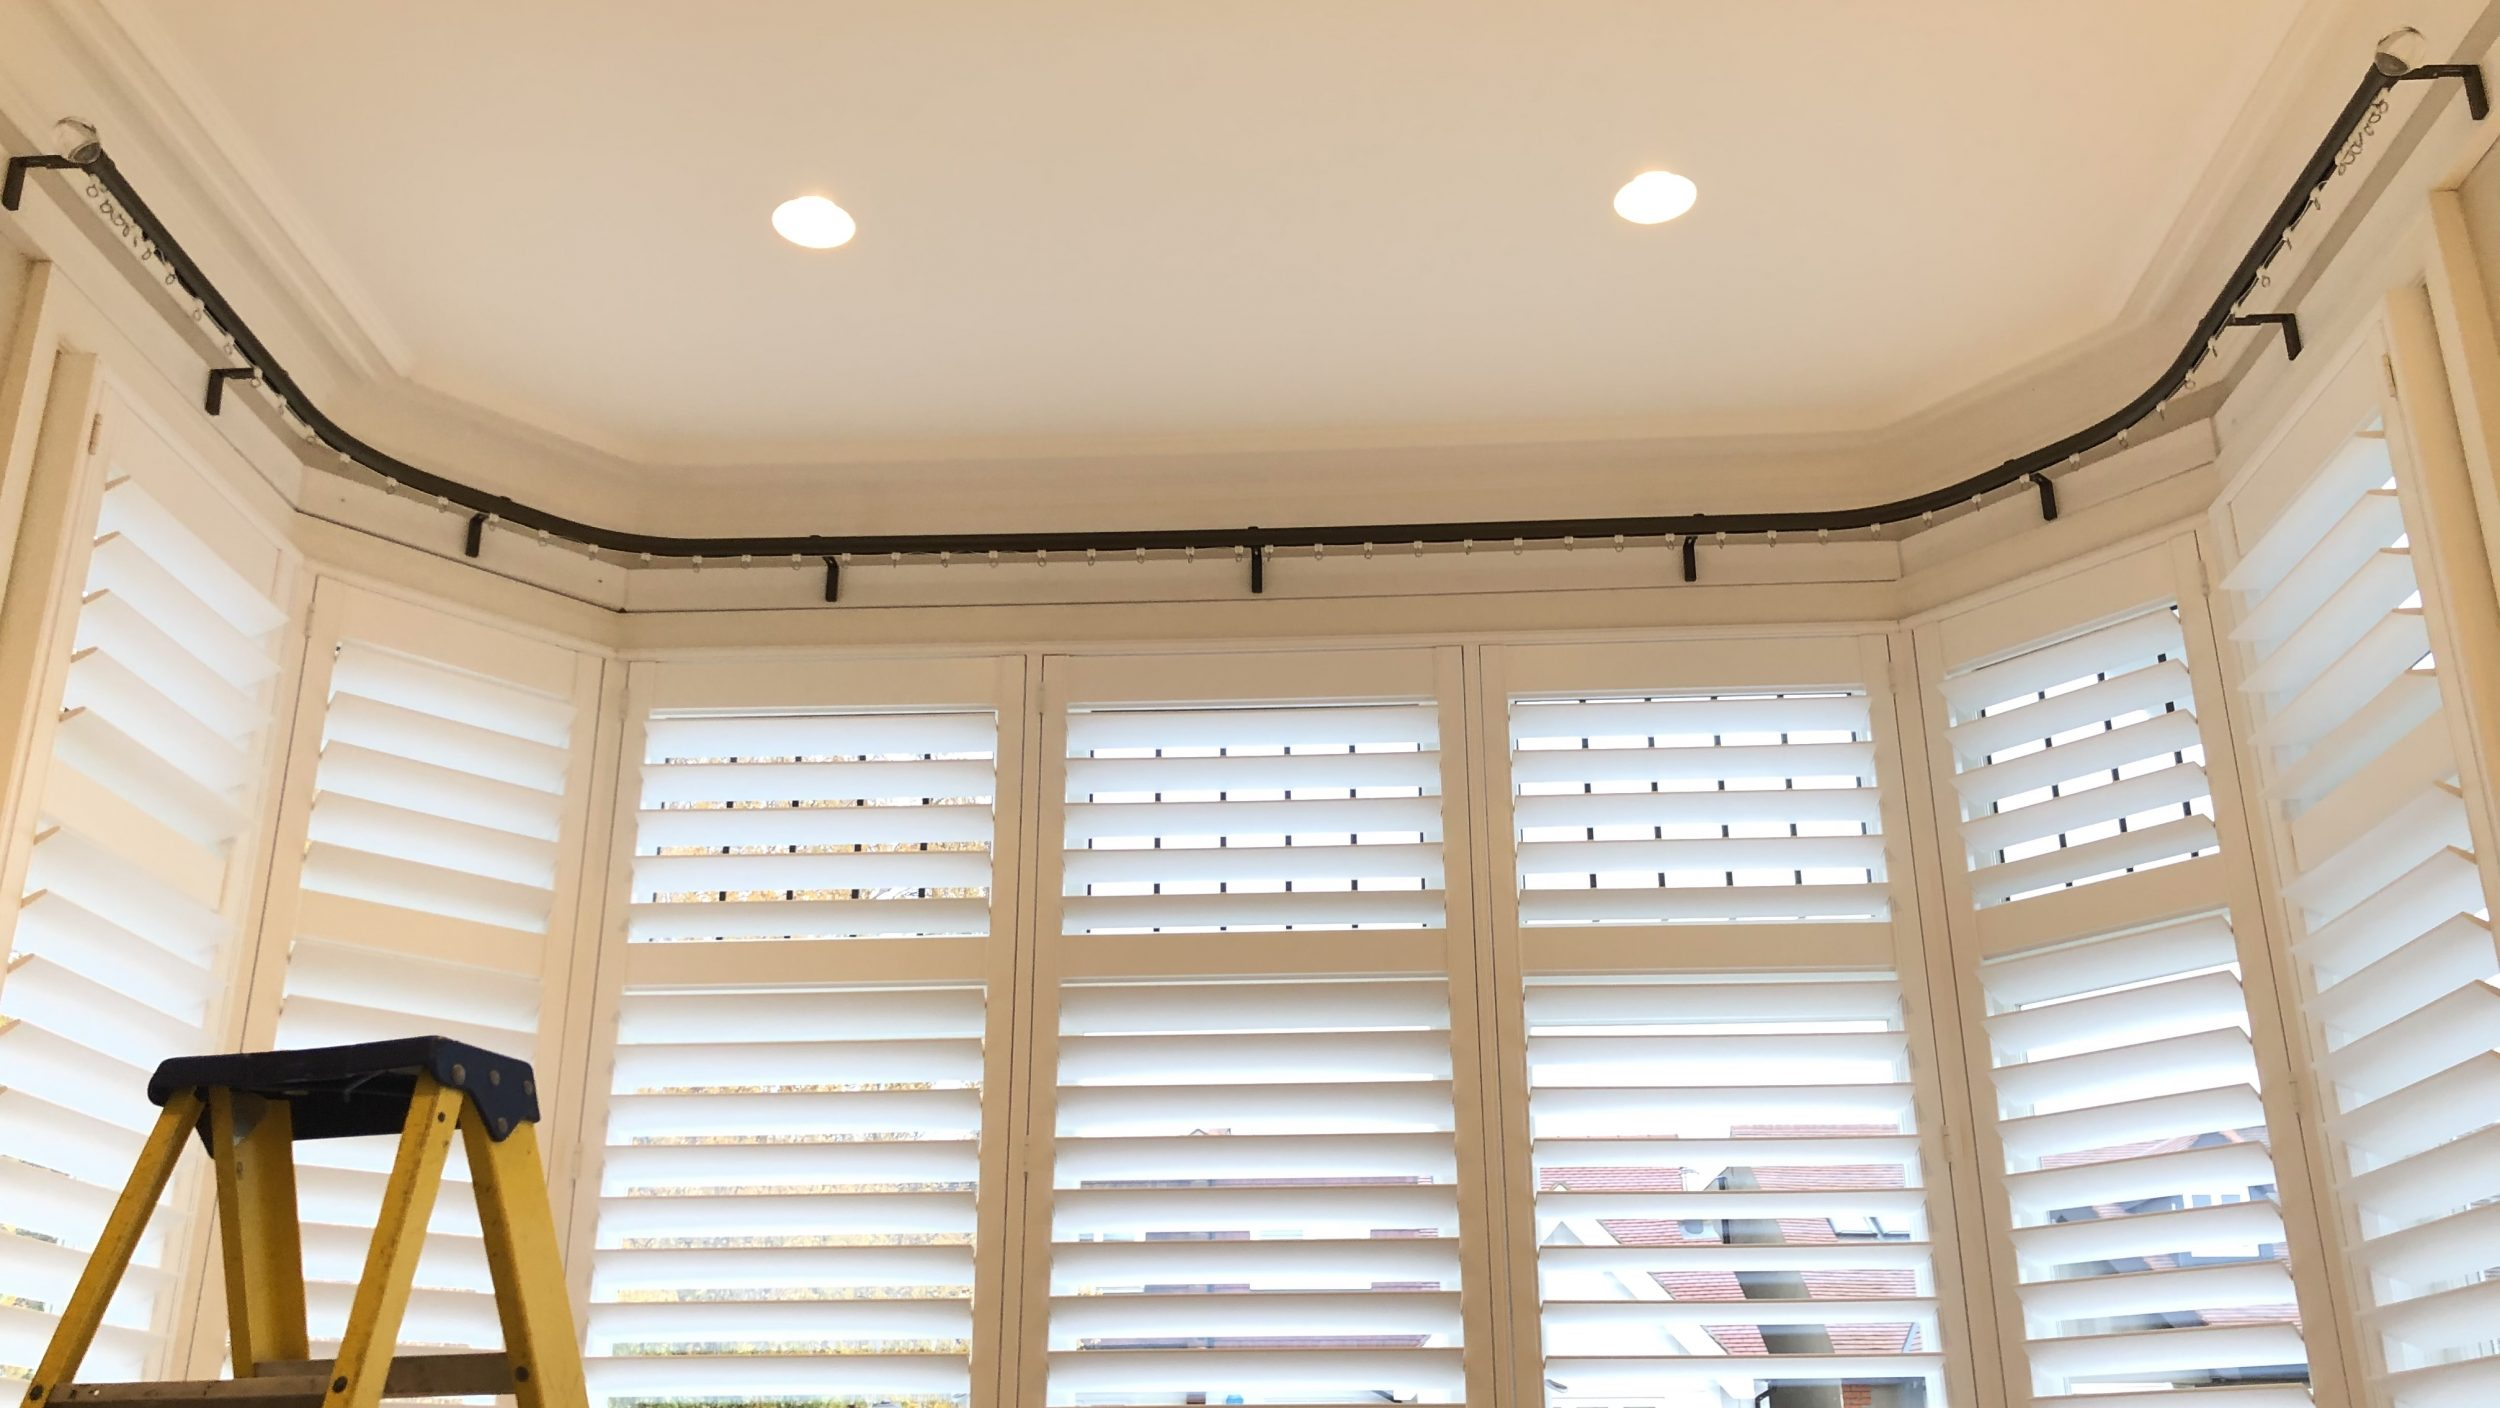 =Erind onTrack= Curtain & Blind Fitting Specialists | Bay Window Silent Gliss Tracks & Poles | Roller, Roman & Venetian Blinds Installation Service | Serving in West & South West London